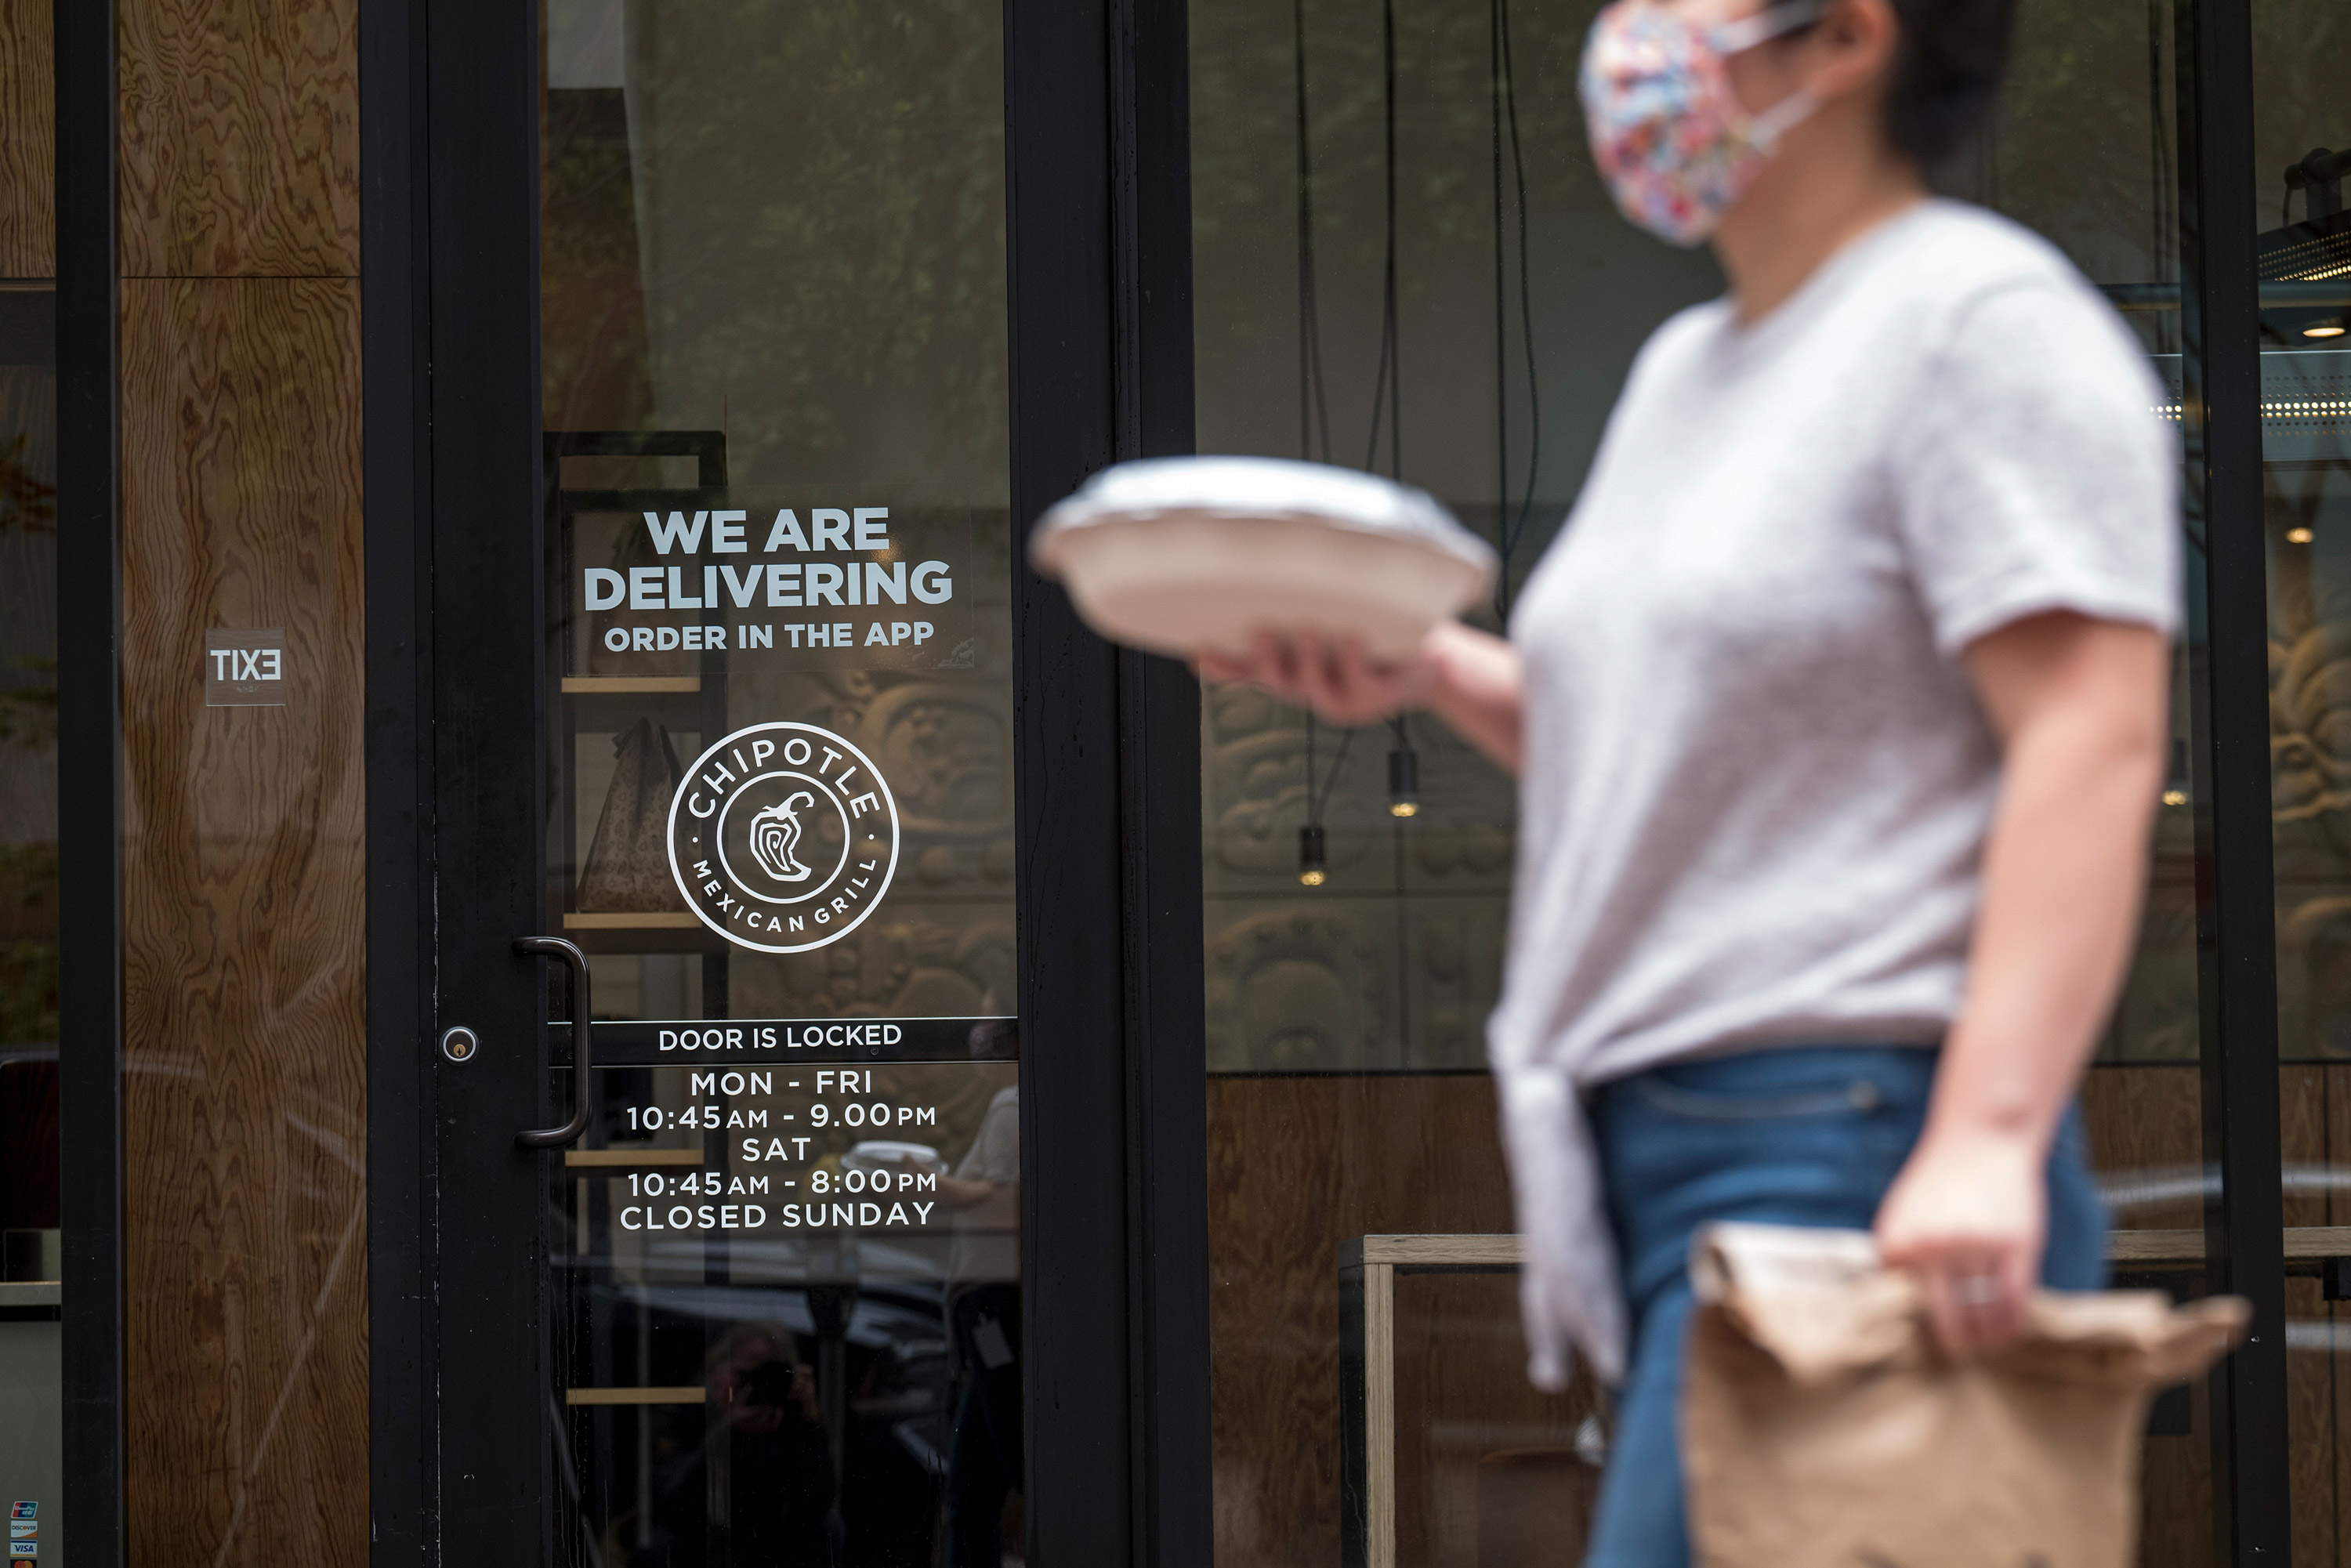 Chipotle is testing curbside pickup